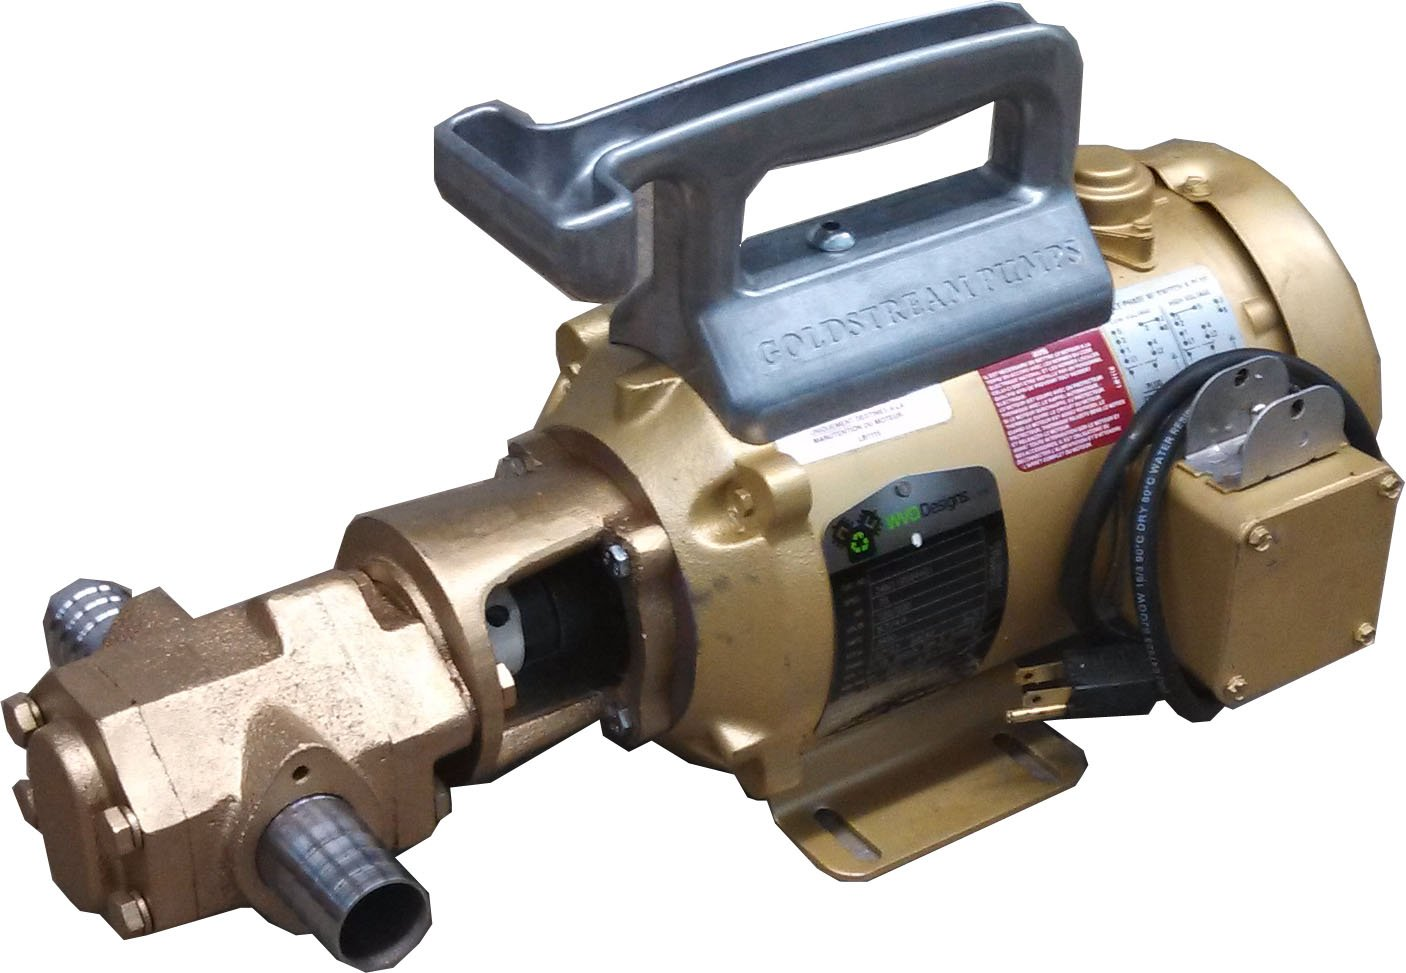 Goldstream Pumps 25gpm Portable Oil Pump by Goldstream Pumps